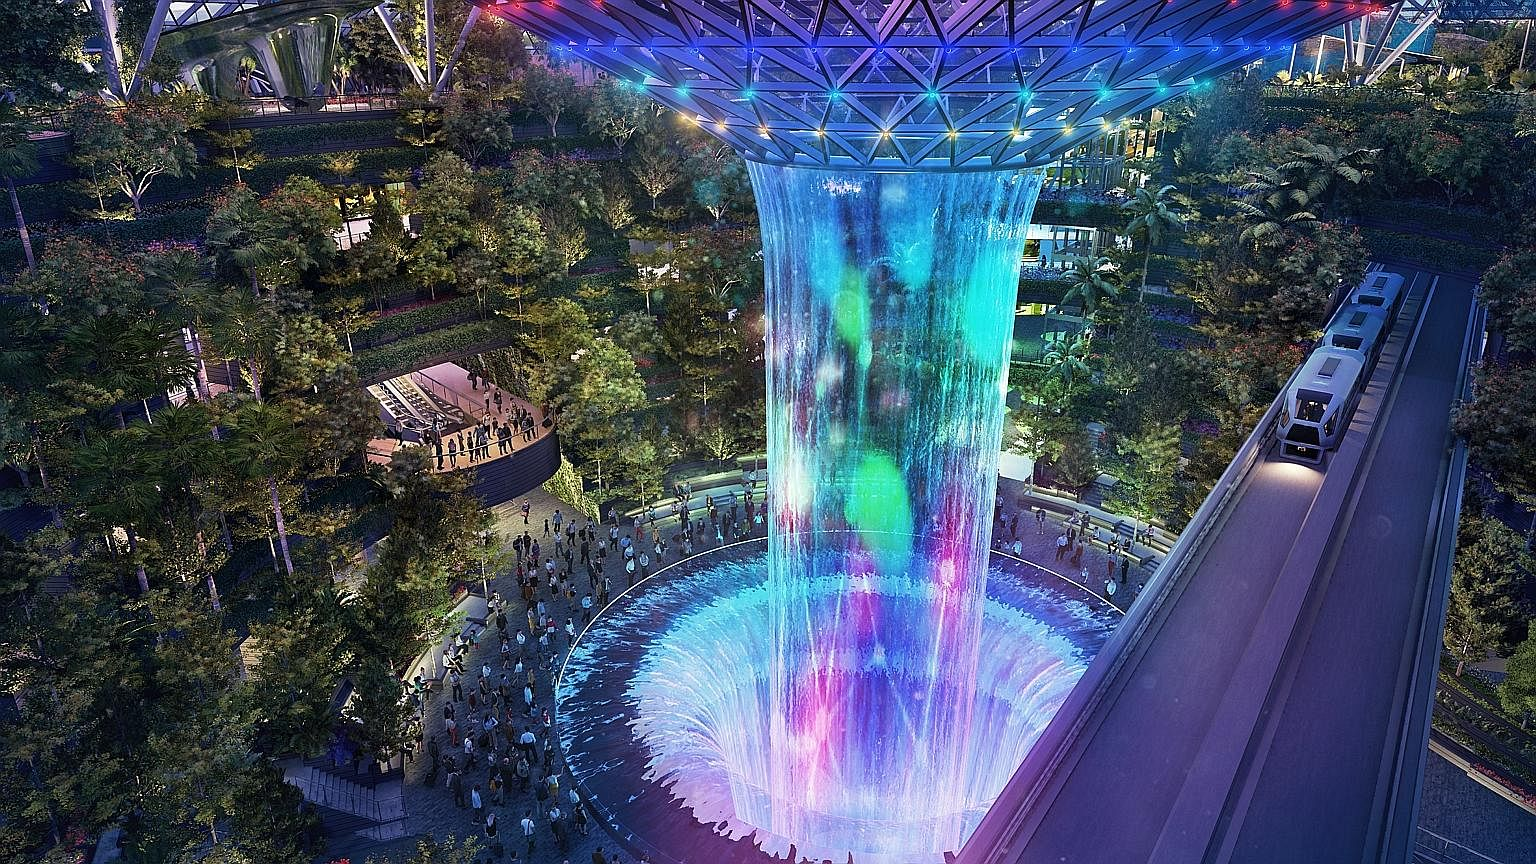 The Rain Vortex, which will transform into a light-and-sound show, is one of the features at Jewel, which opens in early 2019. Jewel Changi Airport's Topiary Walk, where animal-shaped topiaries will add an element of surprise for visitors.